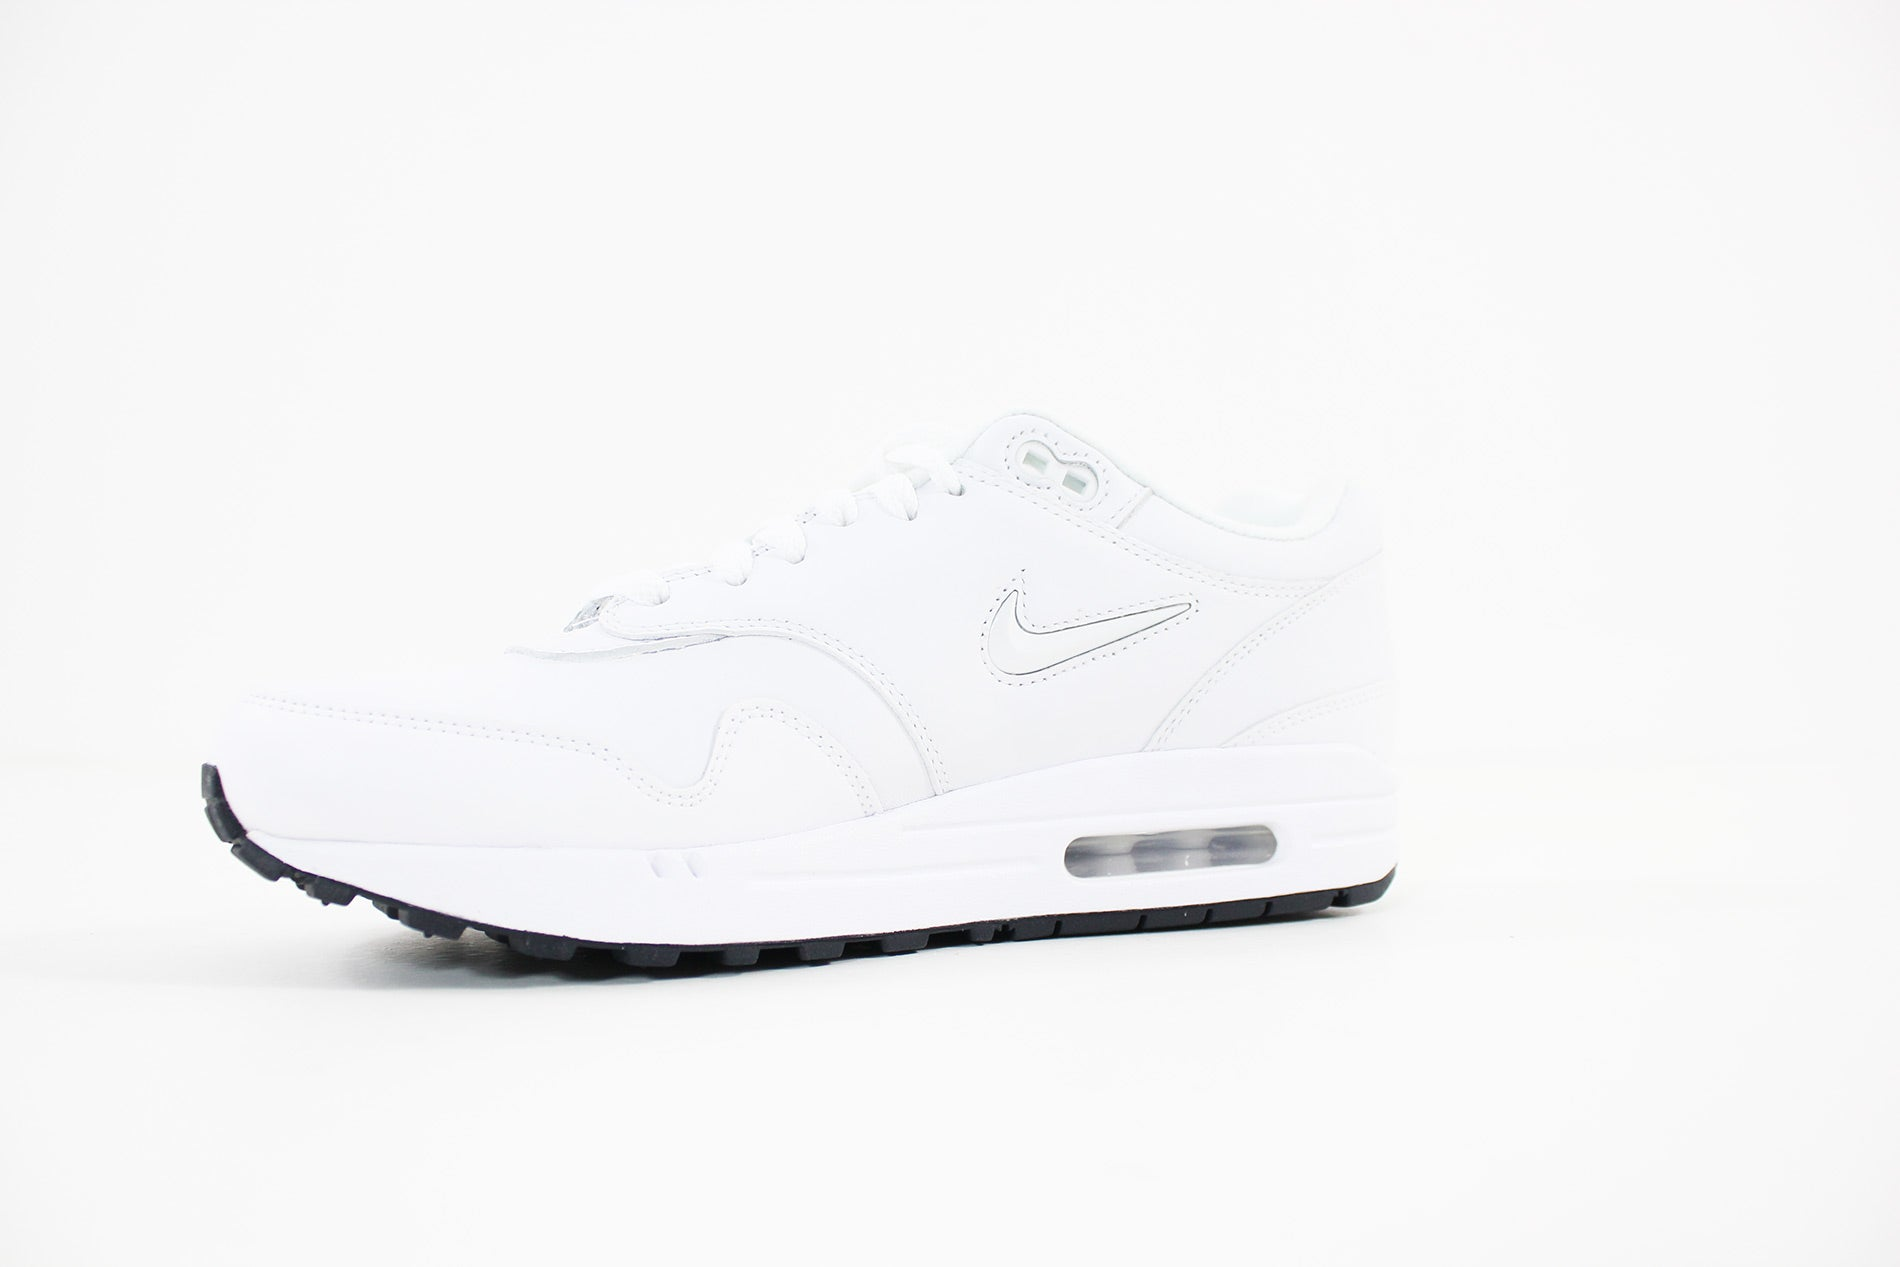 Nike Air Max 1 Premium SC in White White Dark Obsidian